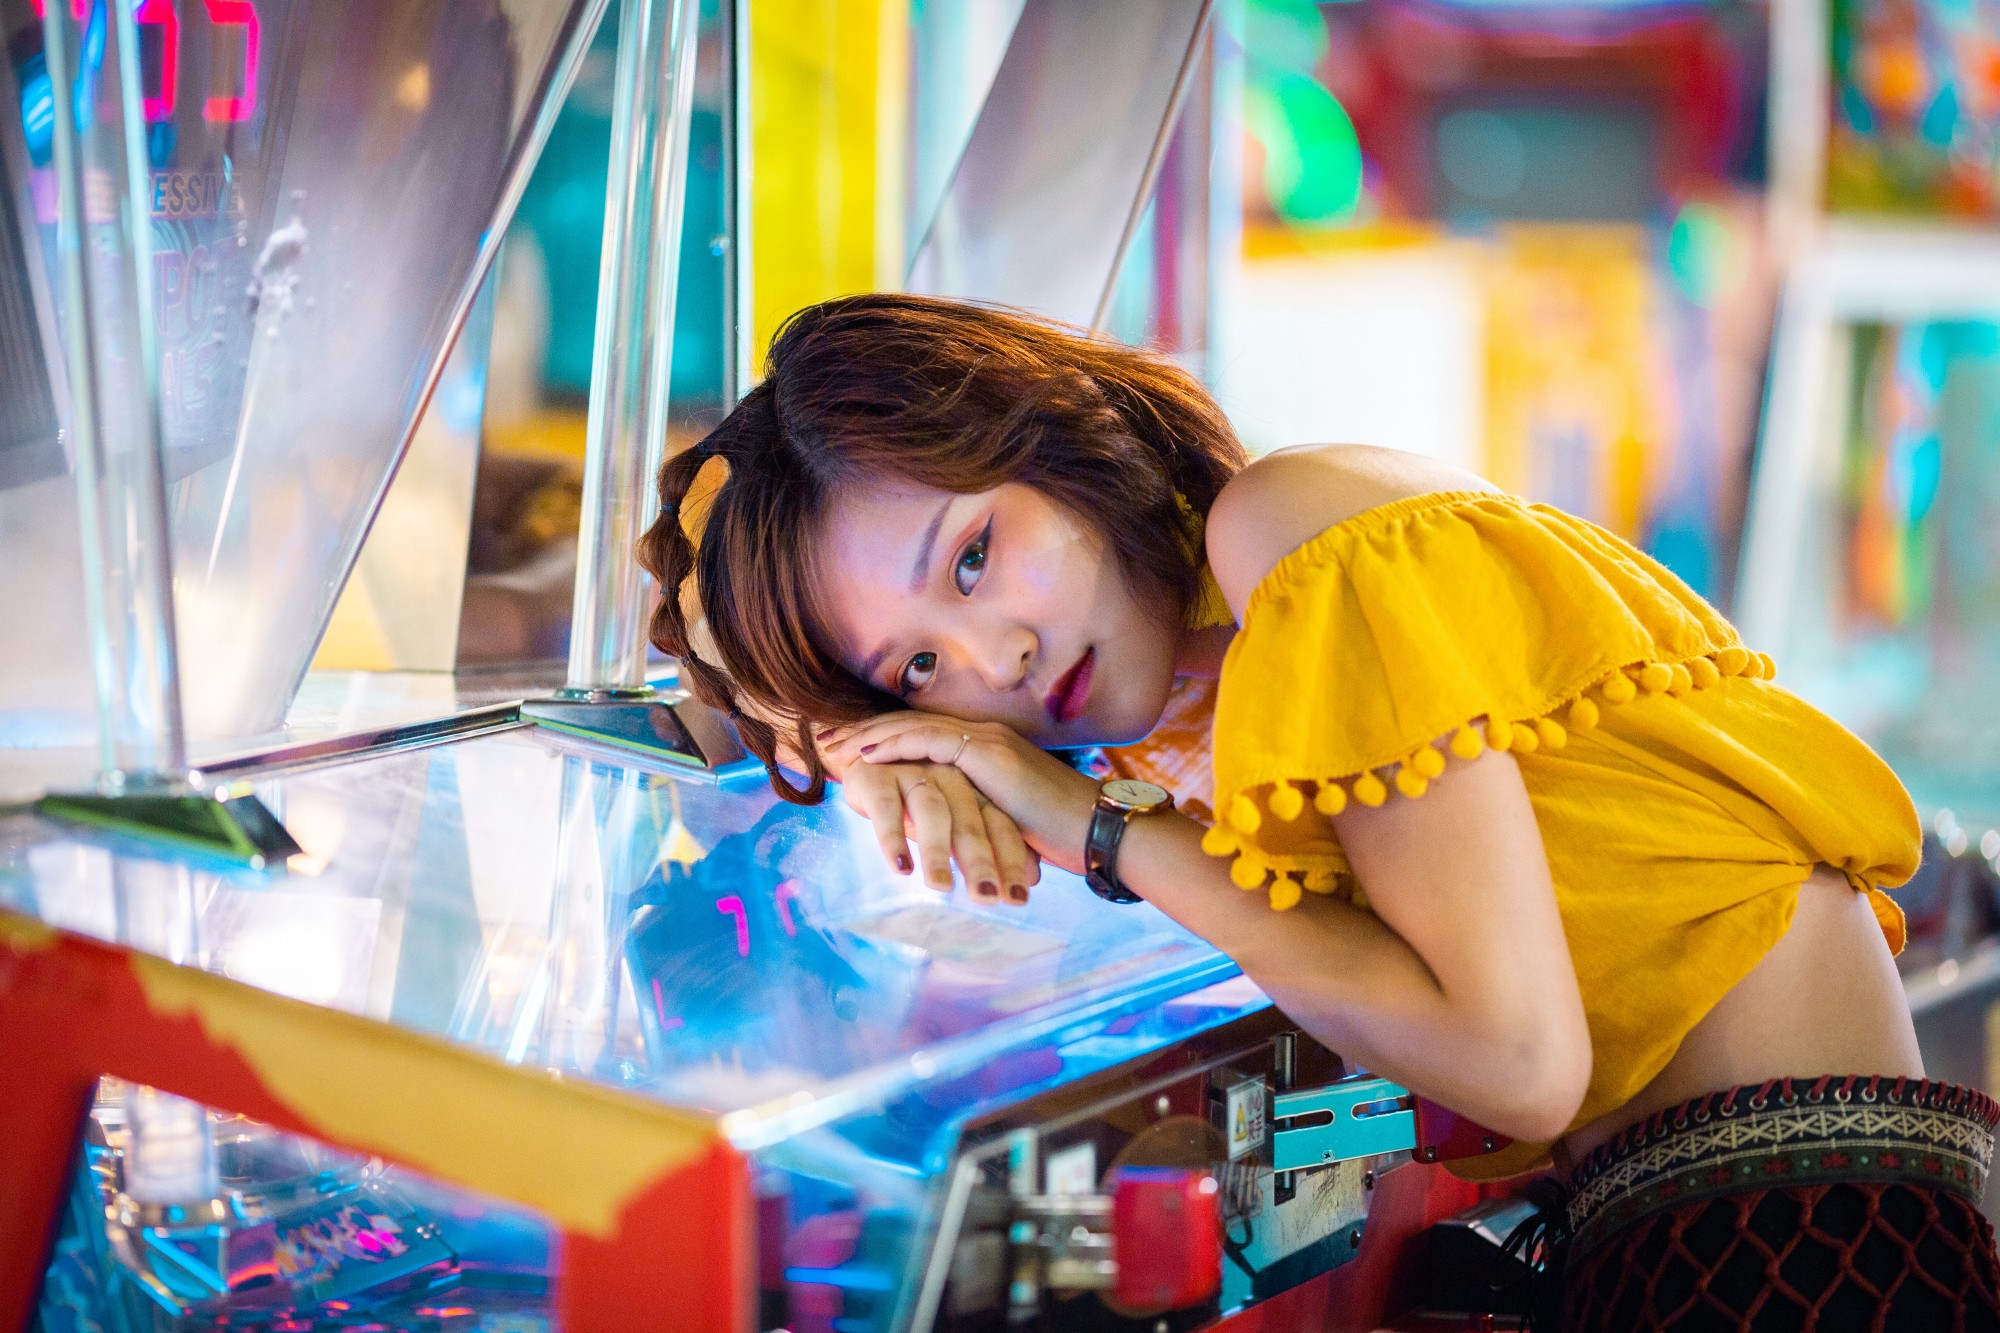 Person—probably a young woman—rests their head on an arcade game while wearing eyeliner and a yellow crop-top blouse.